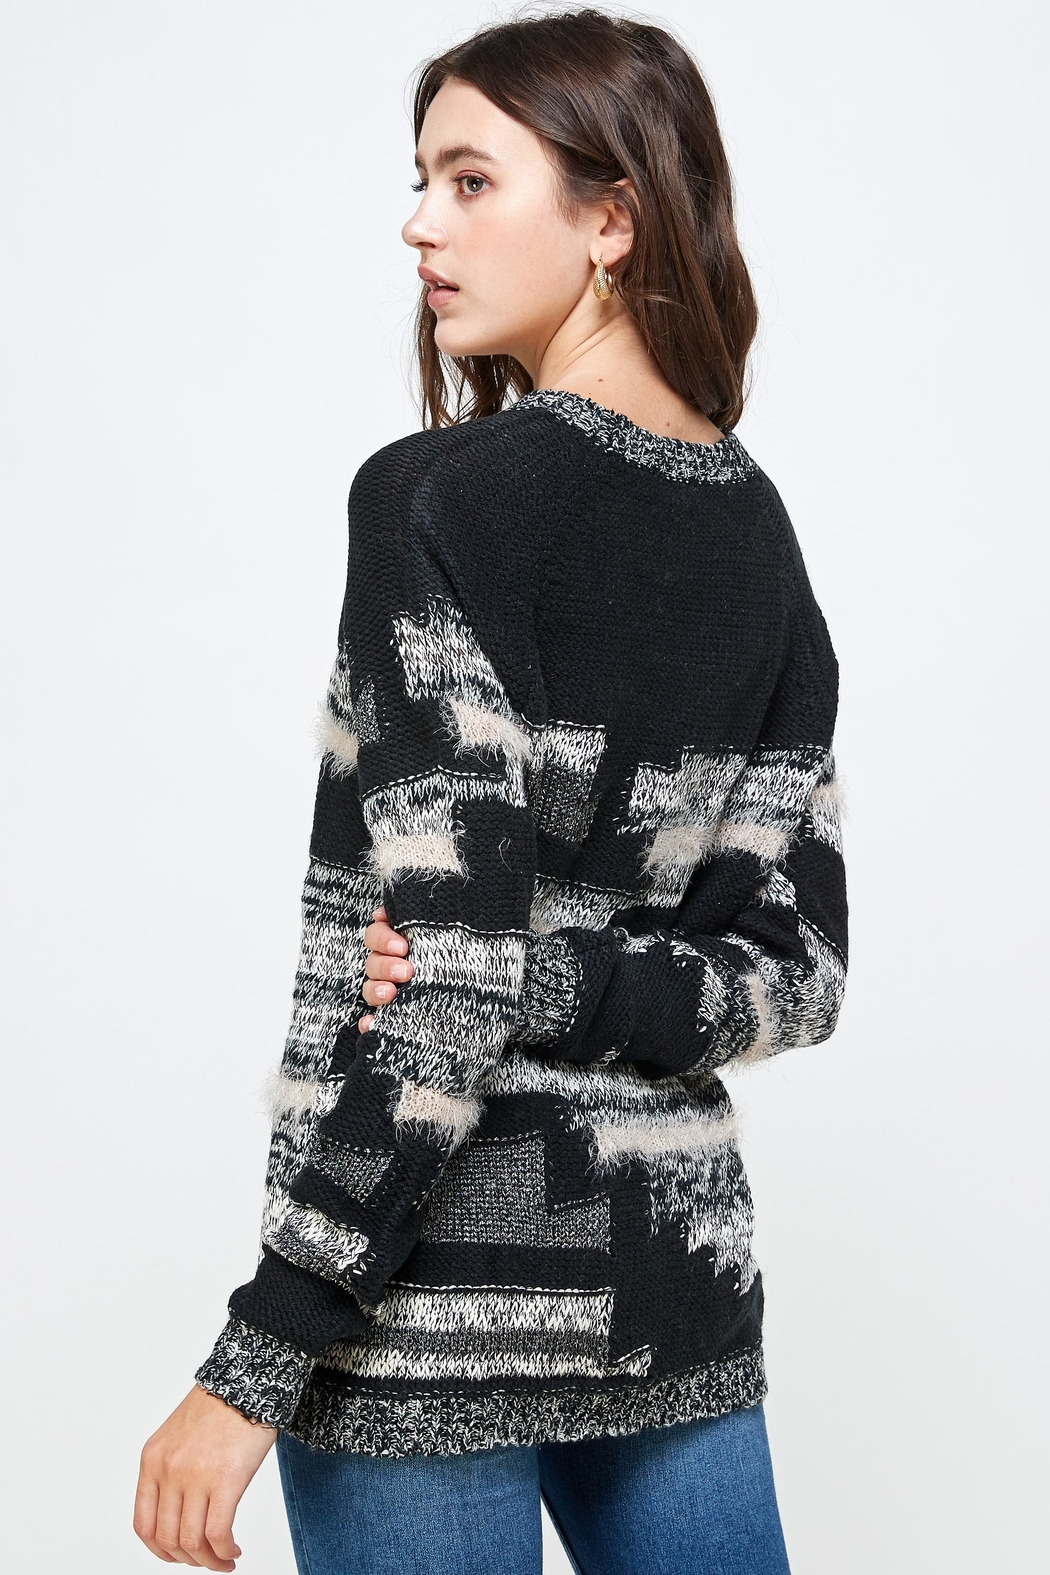 Kaii Multi Yarn Sweater Top - Back Cropped Image